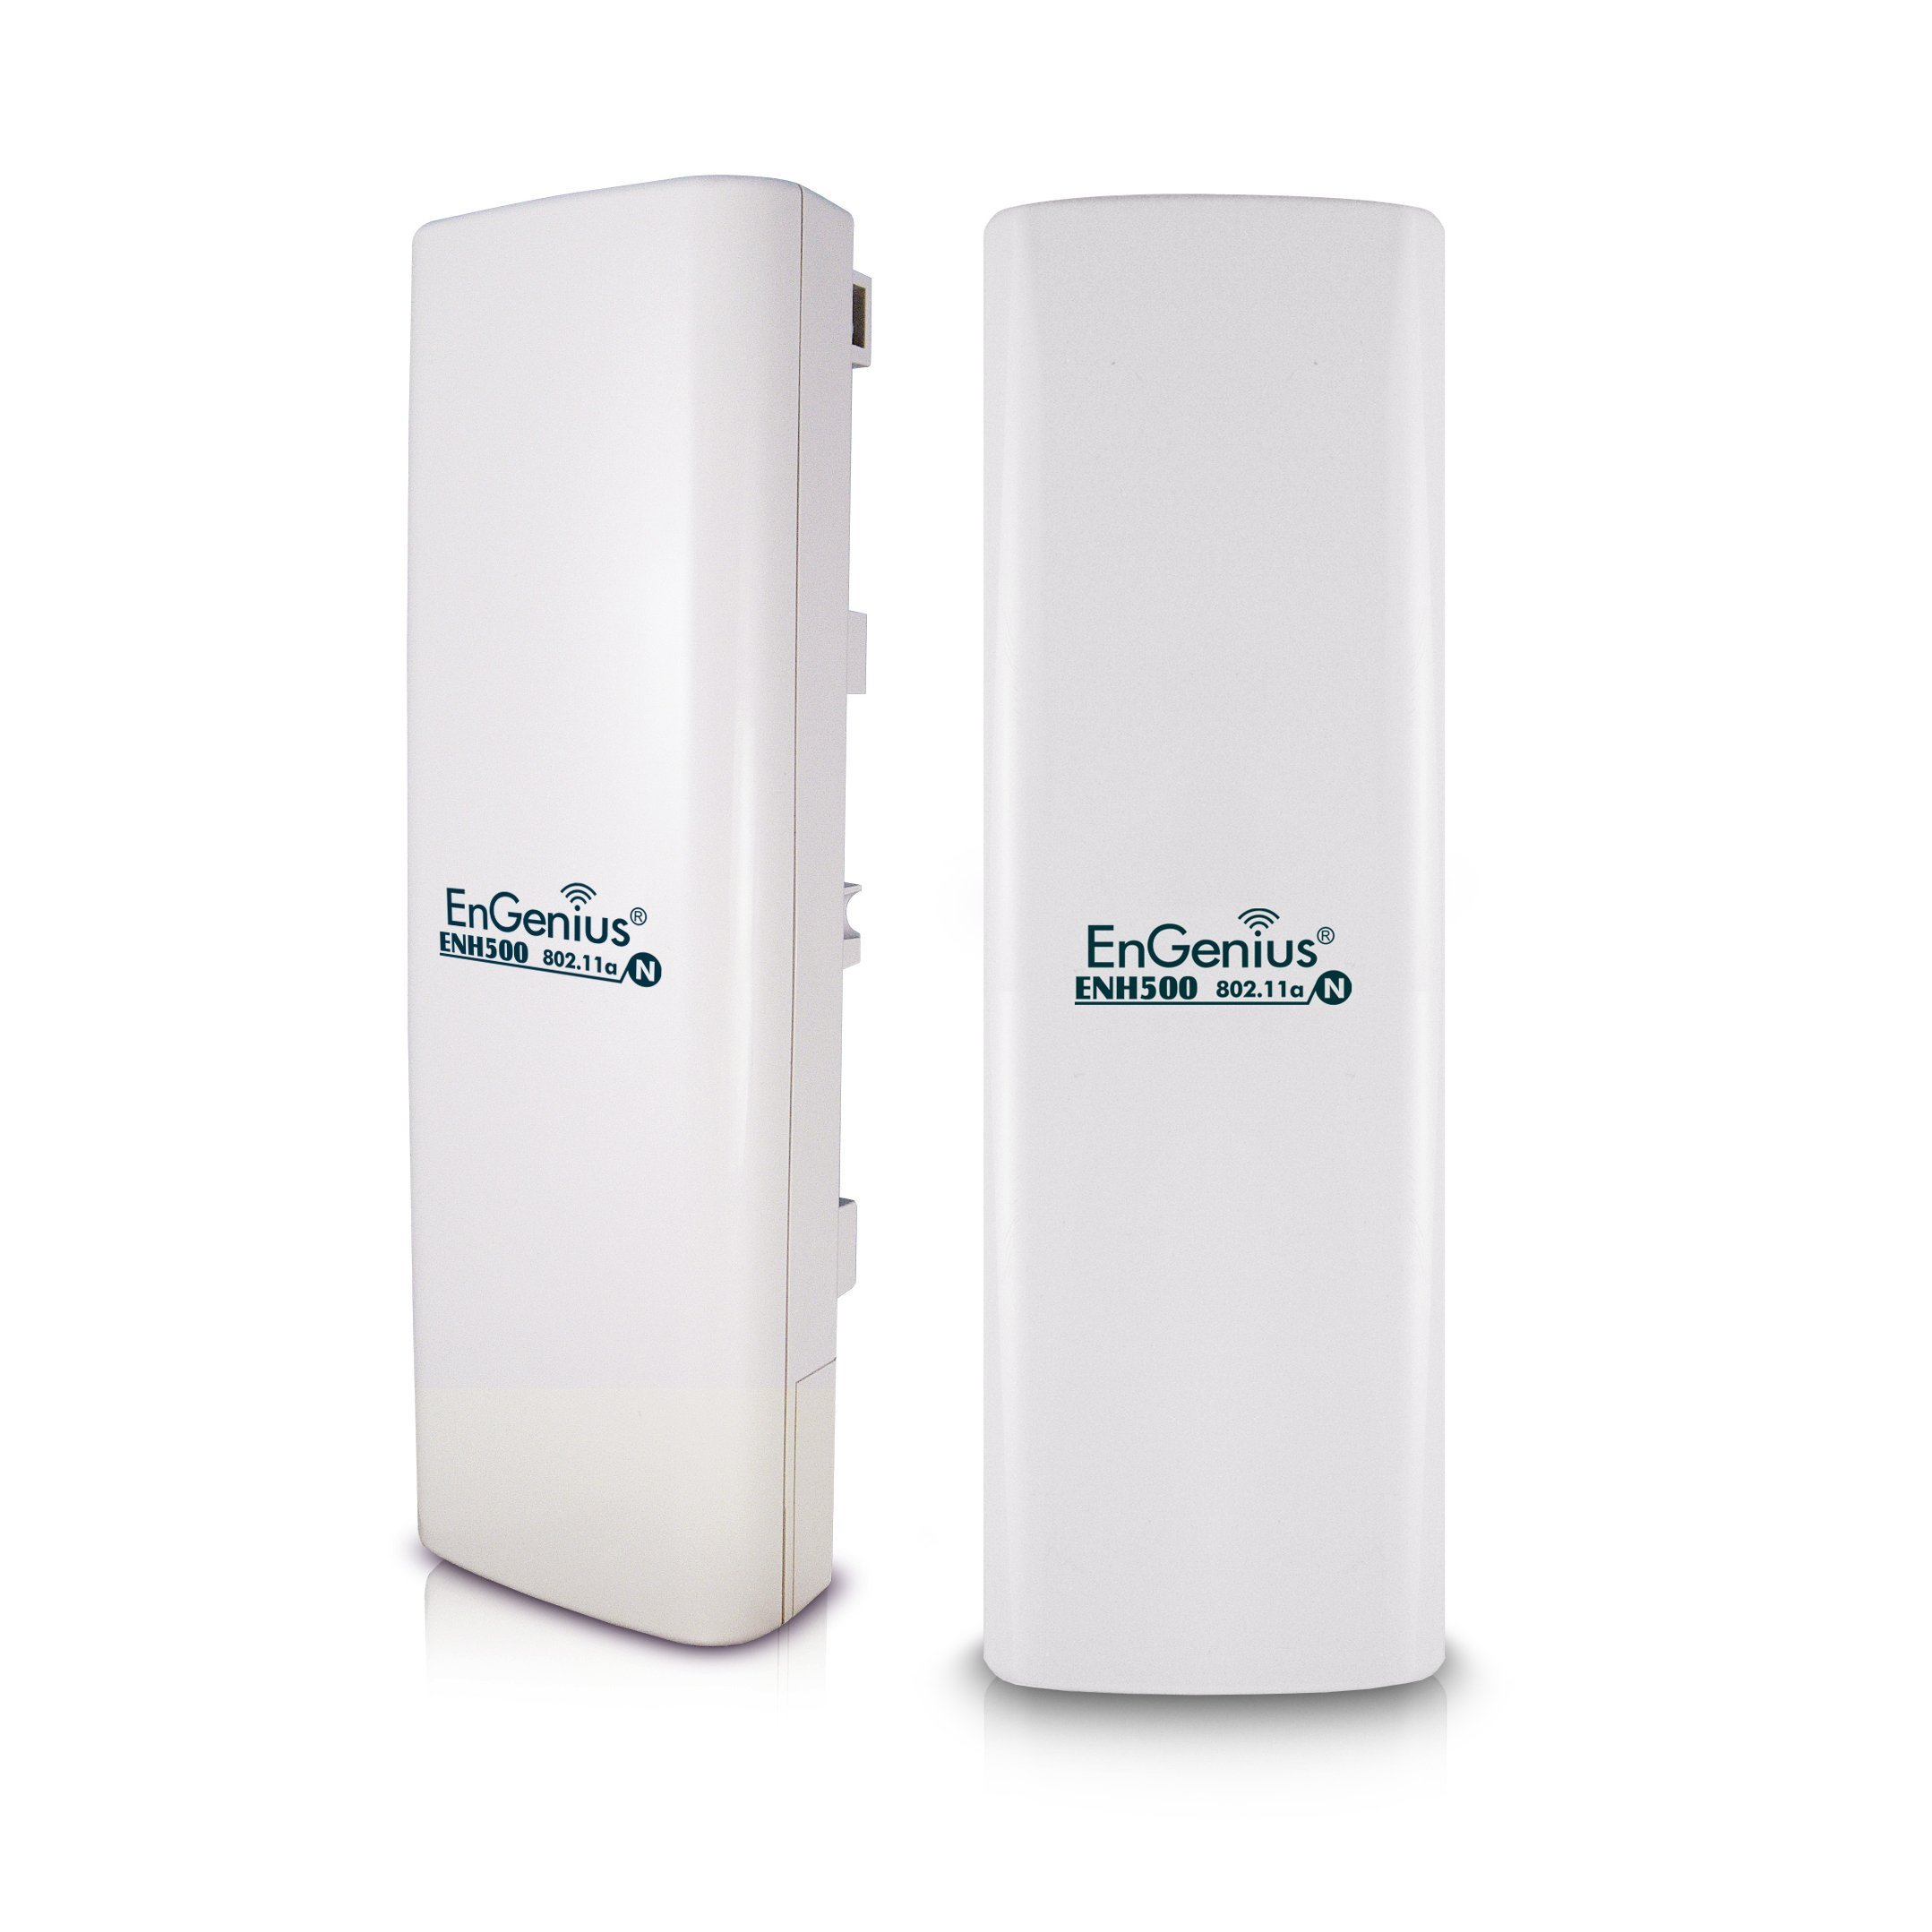 EnGenius 5GHz Wireless Outdoor AP/Client Bridge/CPE, directional antenna, long-range, point-to-point, IP65, 27dBm,13 dBi, [2-Pack] (N-ENH500 KIT) by EnGenius